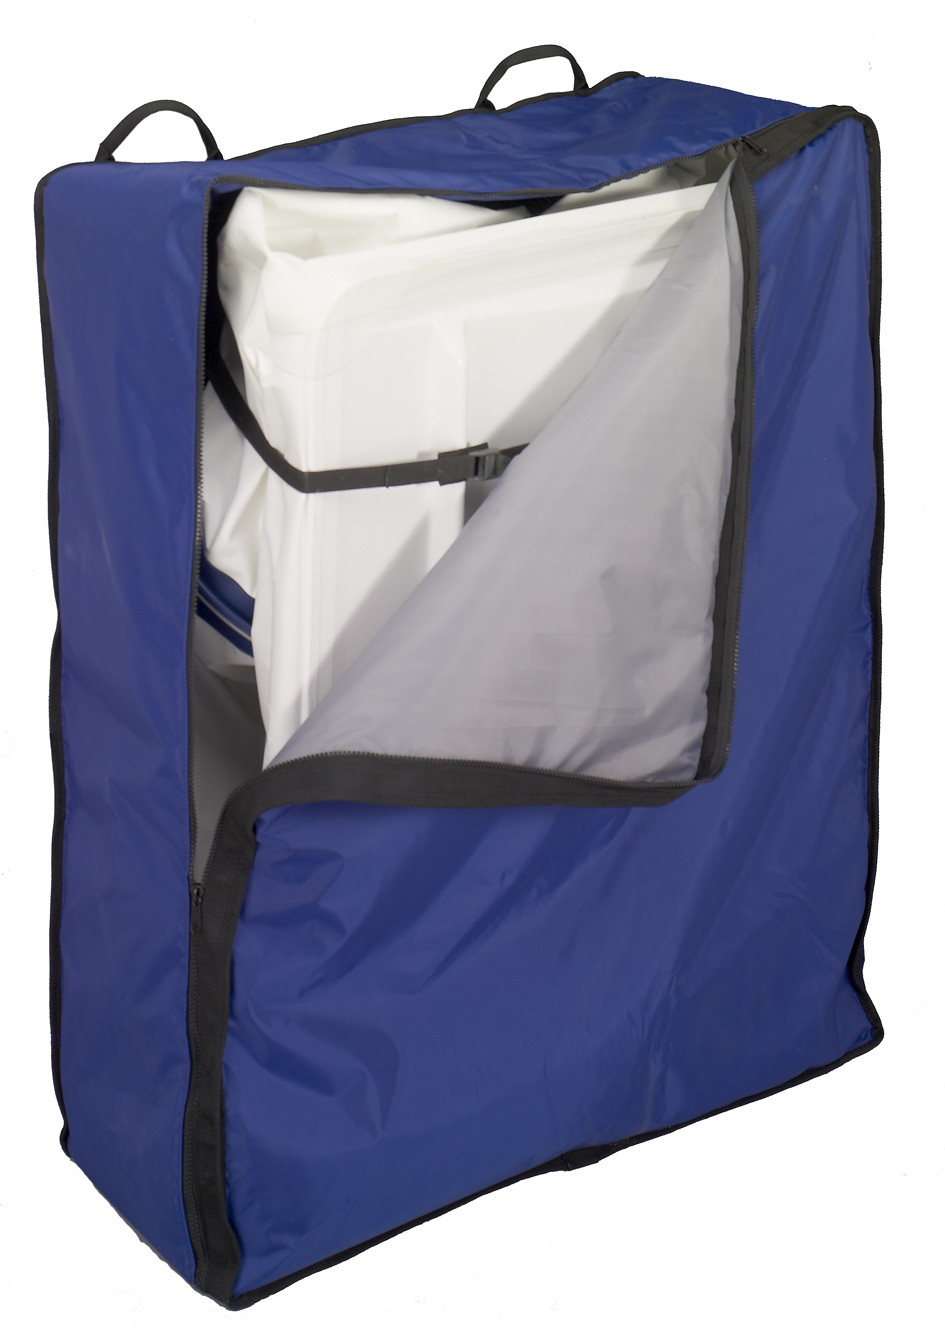 Compact and transport friendly. Folded dimensions : 1,5 m x 1 m.